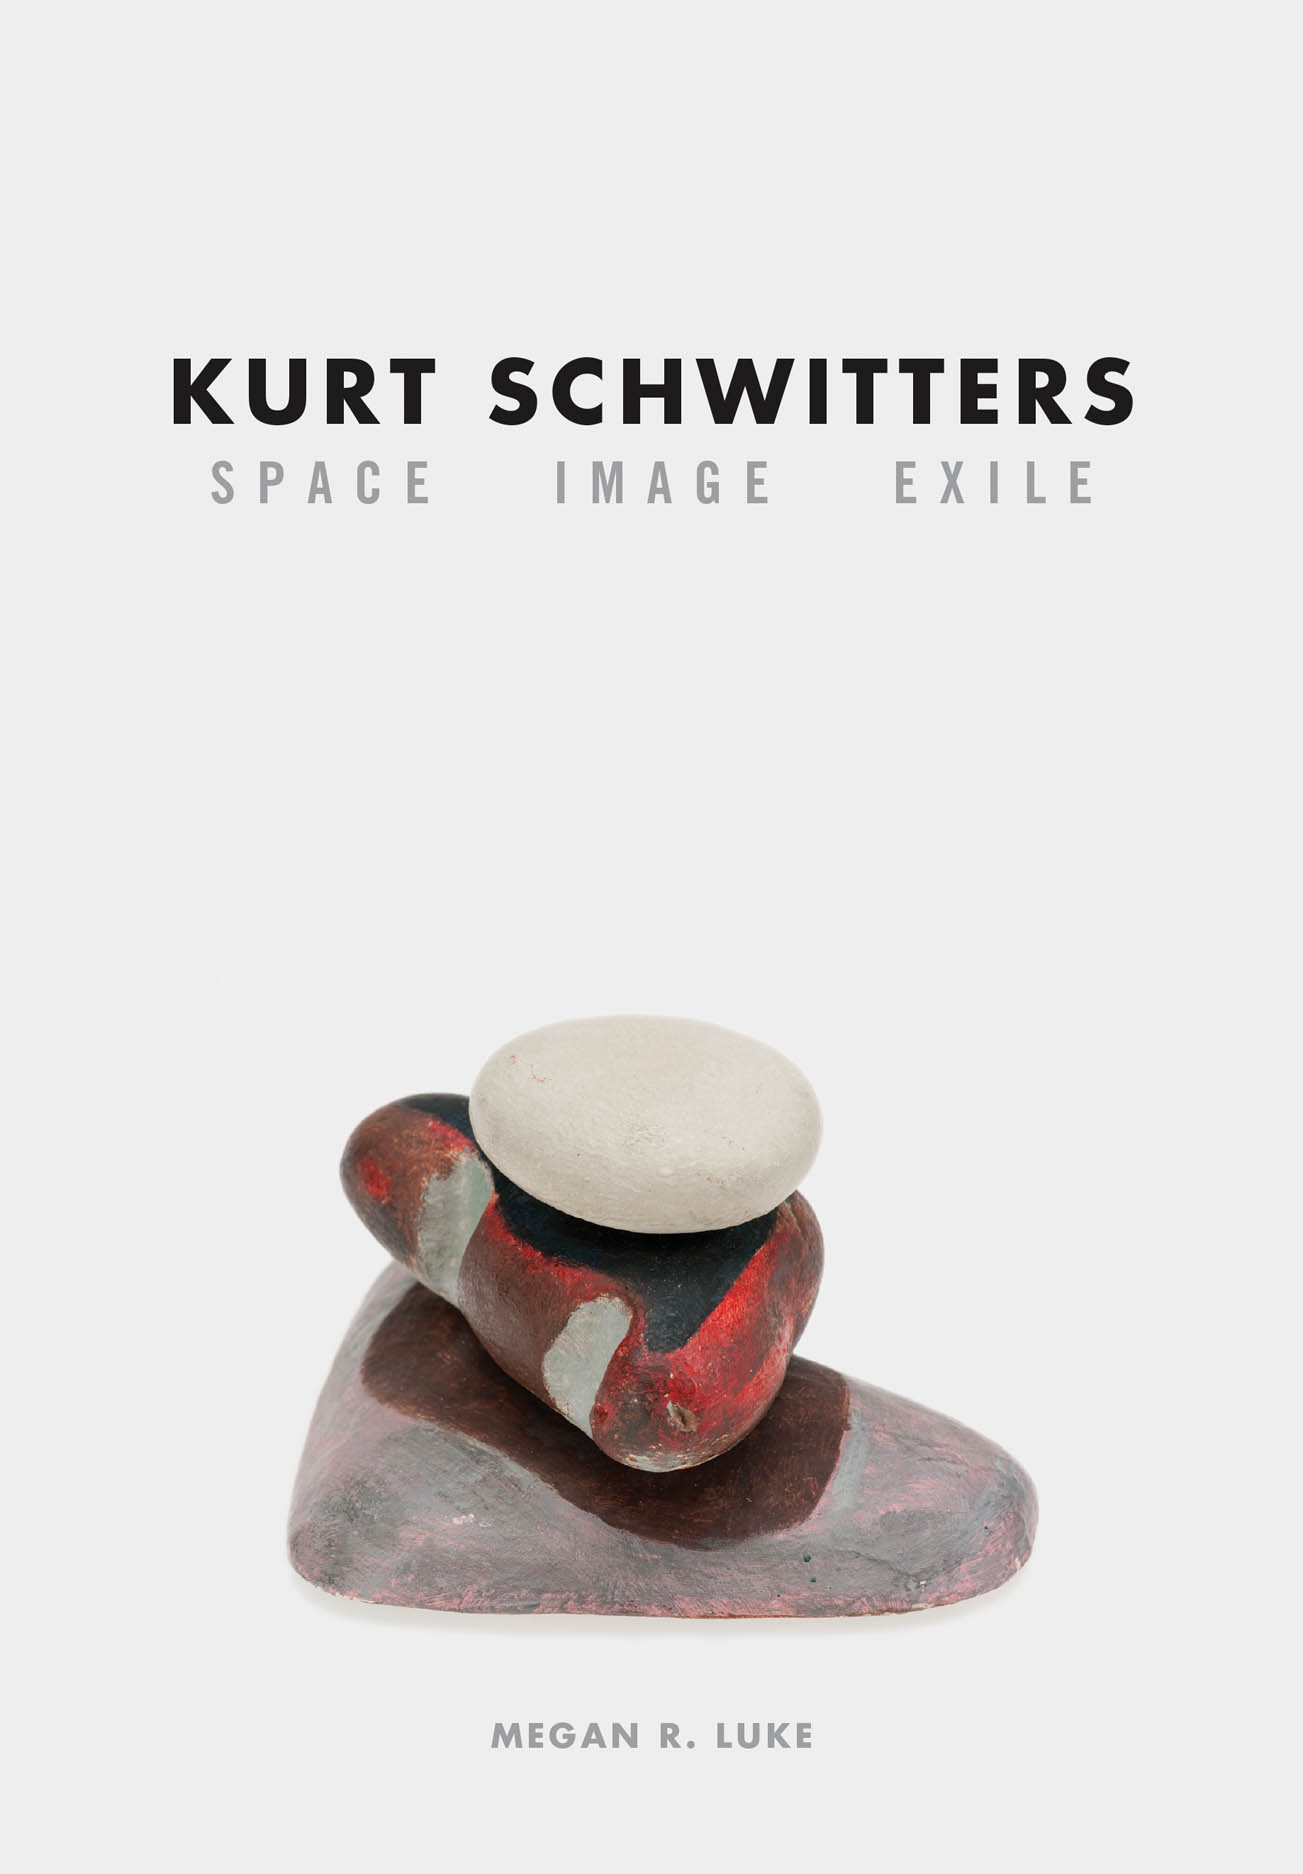 Kurt Schwitters: Space, Image, Exile